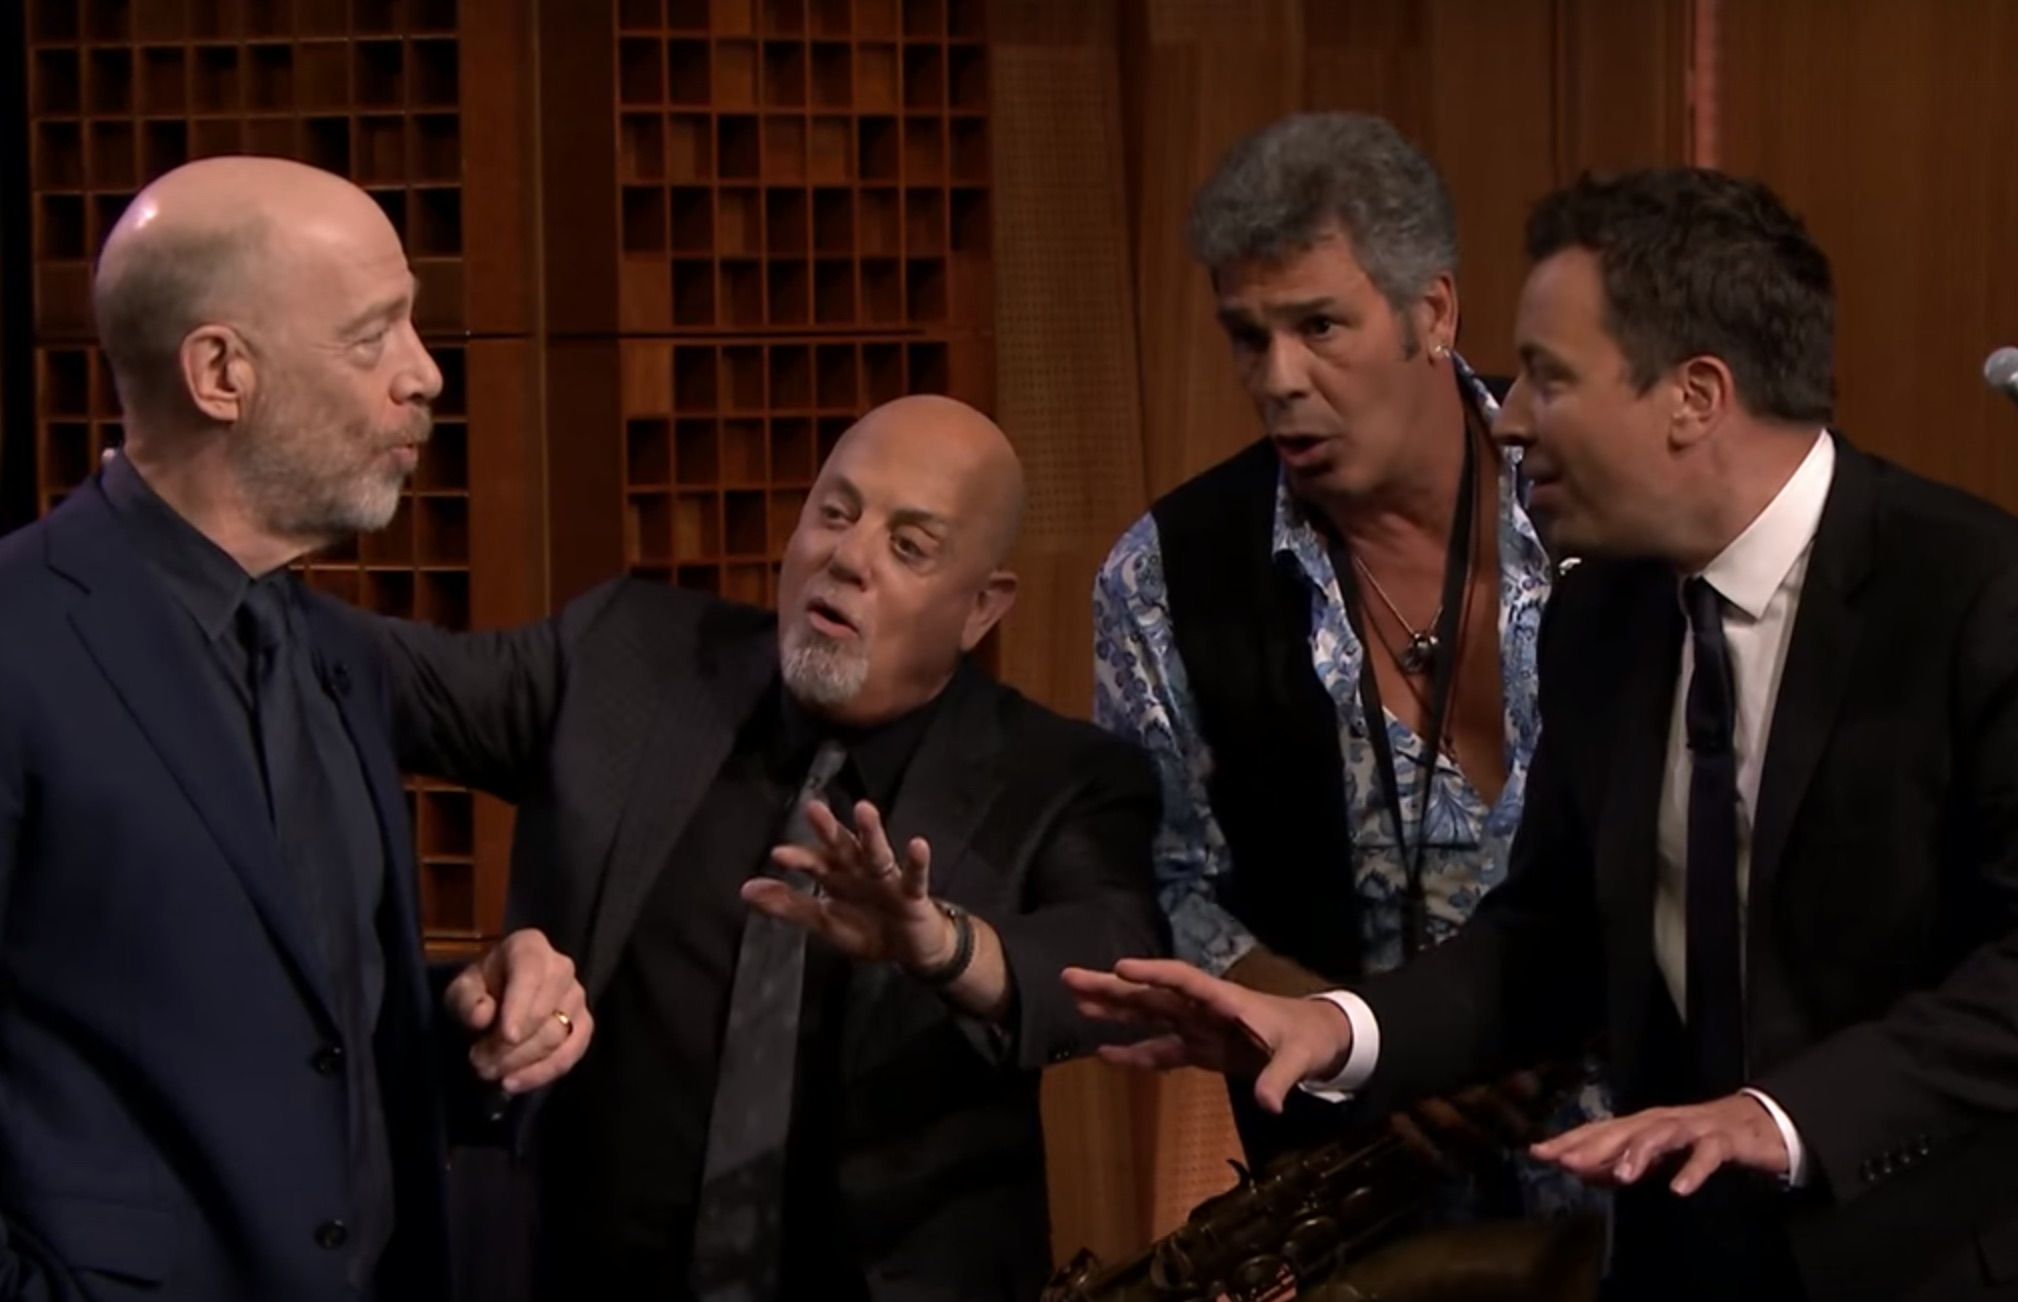 Billy Joel's impromptu doo-wop performance just made our morning